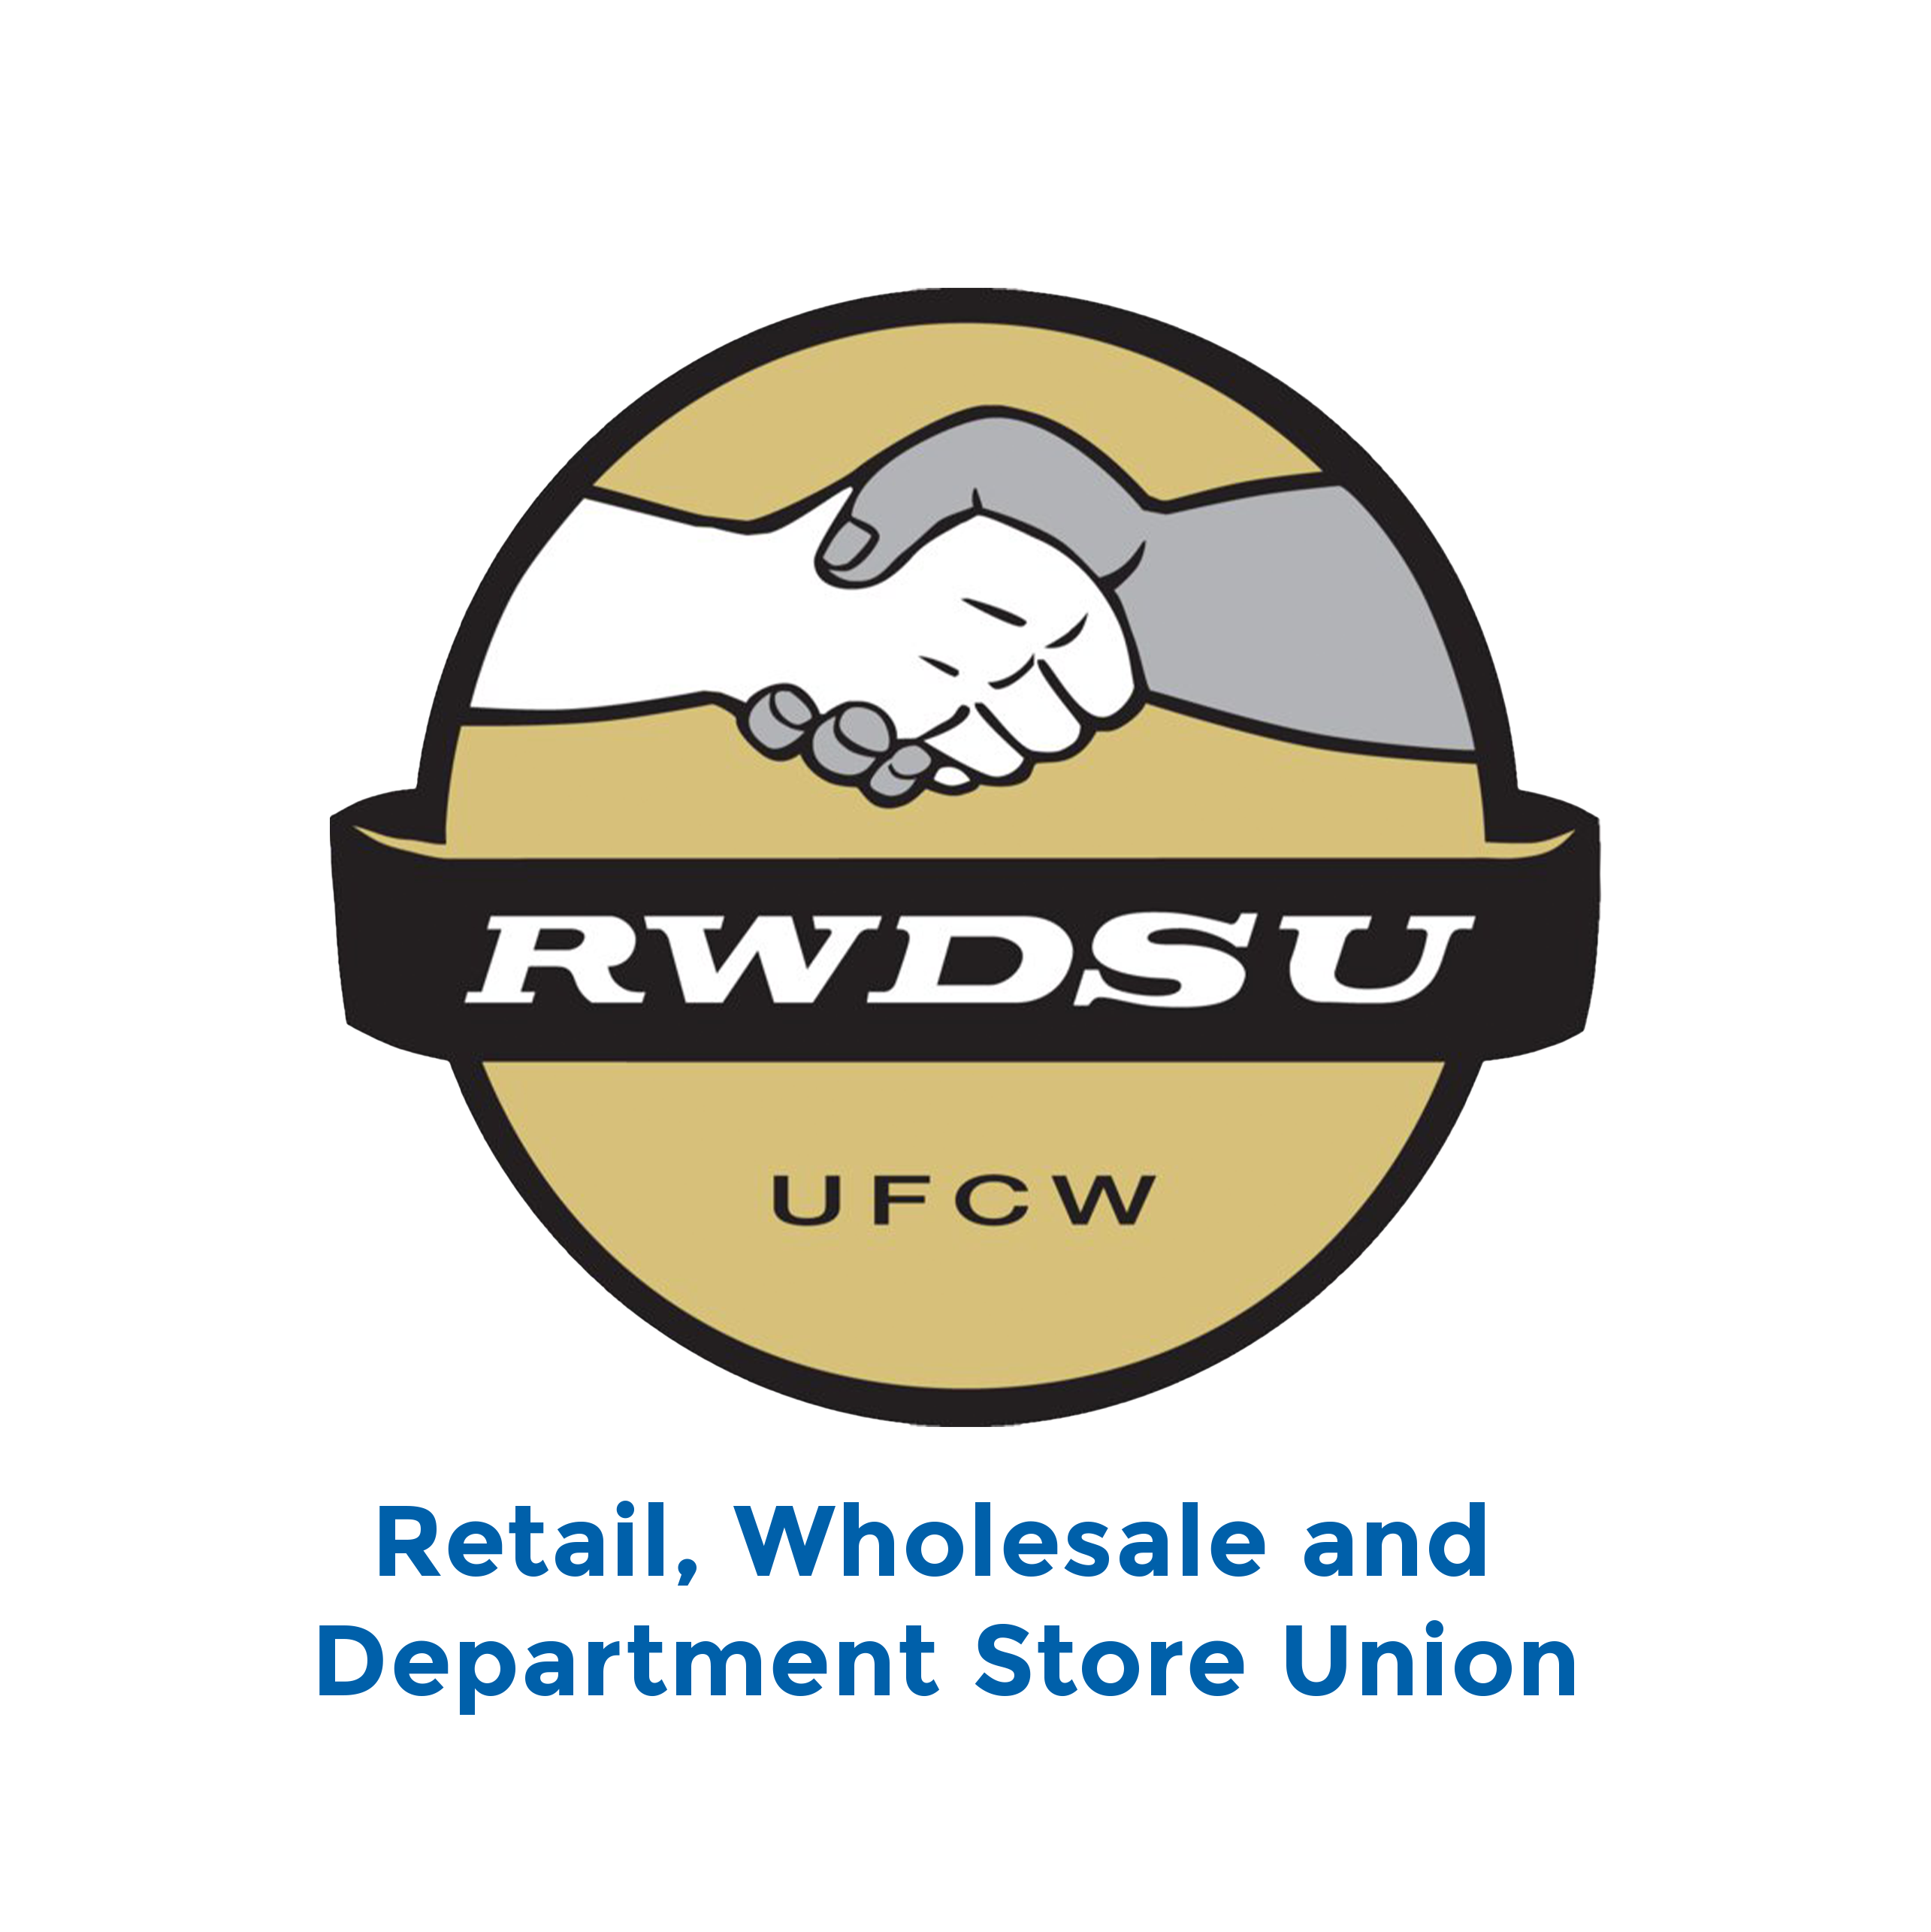 Retail, Wholesale and Department Store Union